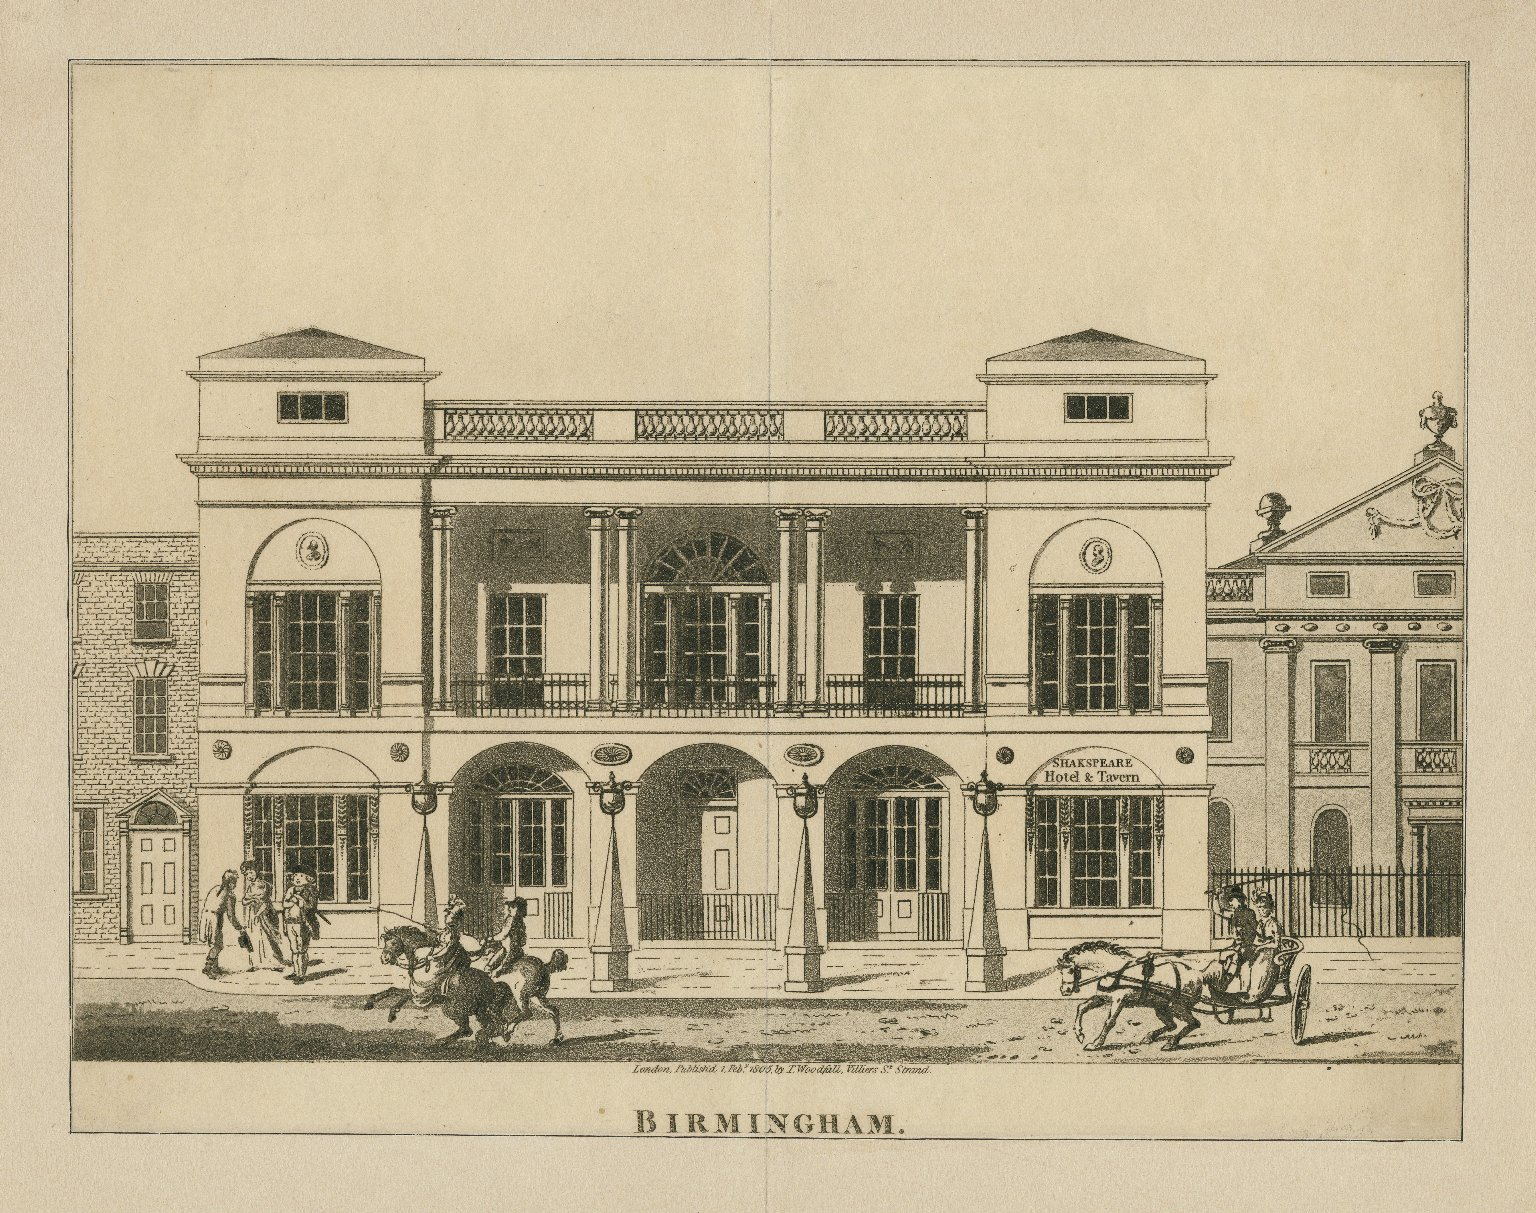 <b>Birmingham theatre, 1805</b>     	</br>Exterior of the Theatre Royal in Birmingham, England, 1805</br><br/><b>Source: </b><i>James Winston, Birmingham [theatre] (Call number: ART File B620 no.2 (size XS)), 1805, Folger Digital Image Collection, University of Cincinnati Libraries Digital Collections, University of Cincinnati, http://digproj.libraries.uc.edu:8180/luna/servlet/s/849koy</i>